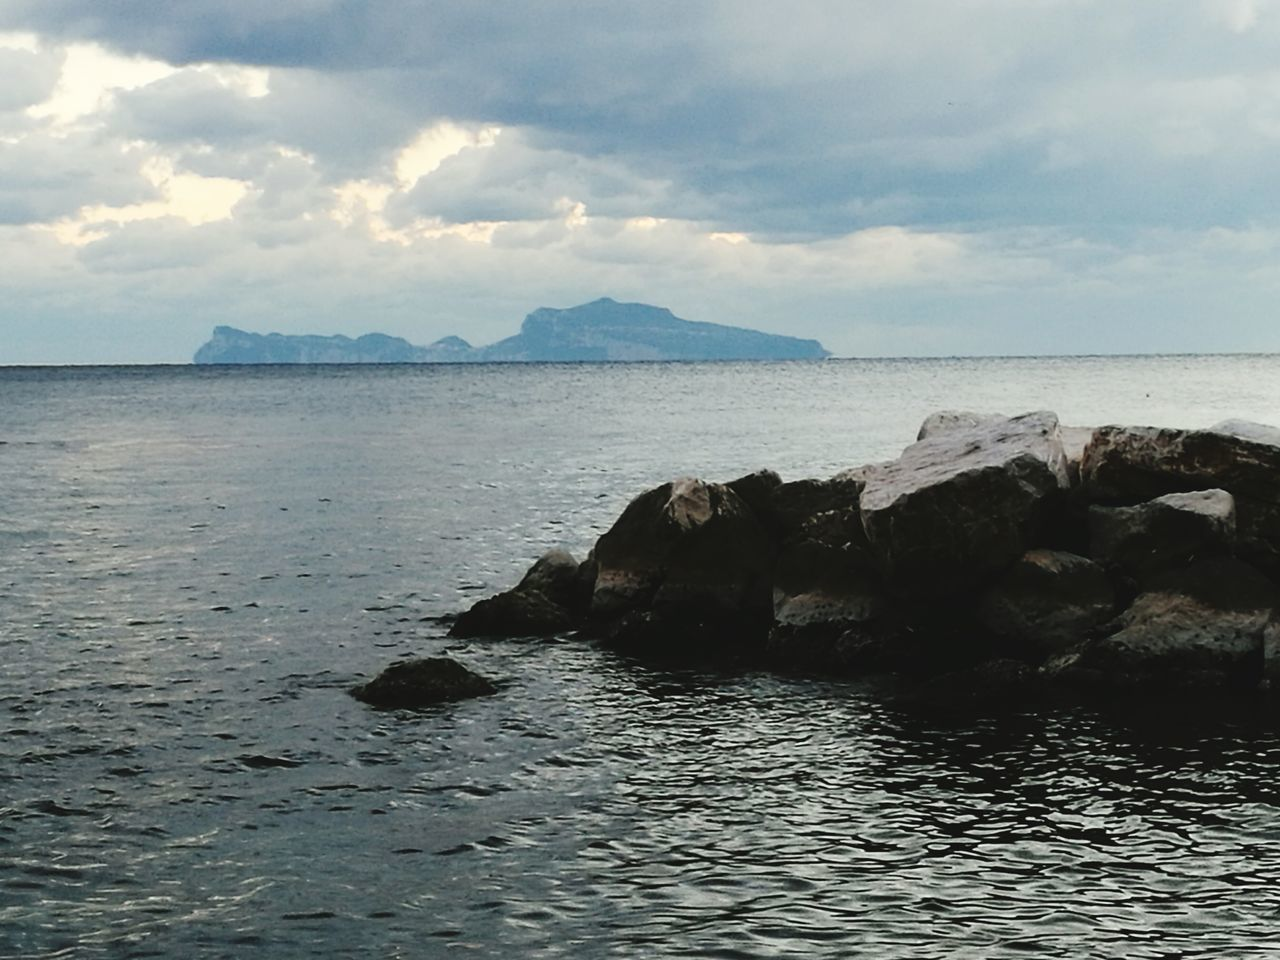 sea, water, tranquility, scenics, nature, beauty in nature, sky, tranquil scene, rock - object, no people, waterfront, outdoors, cloud - sky, day, horizon over water